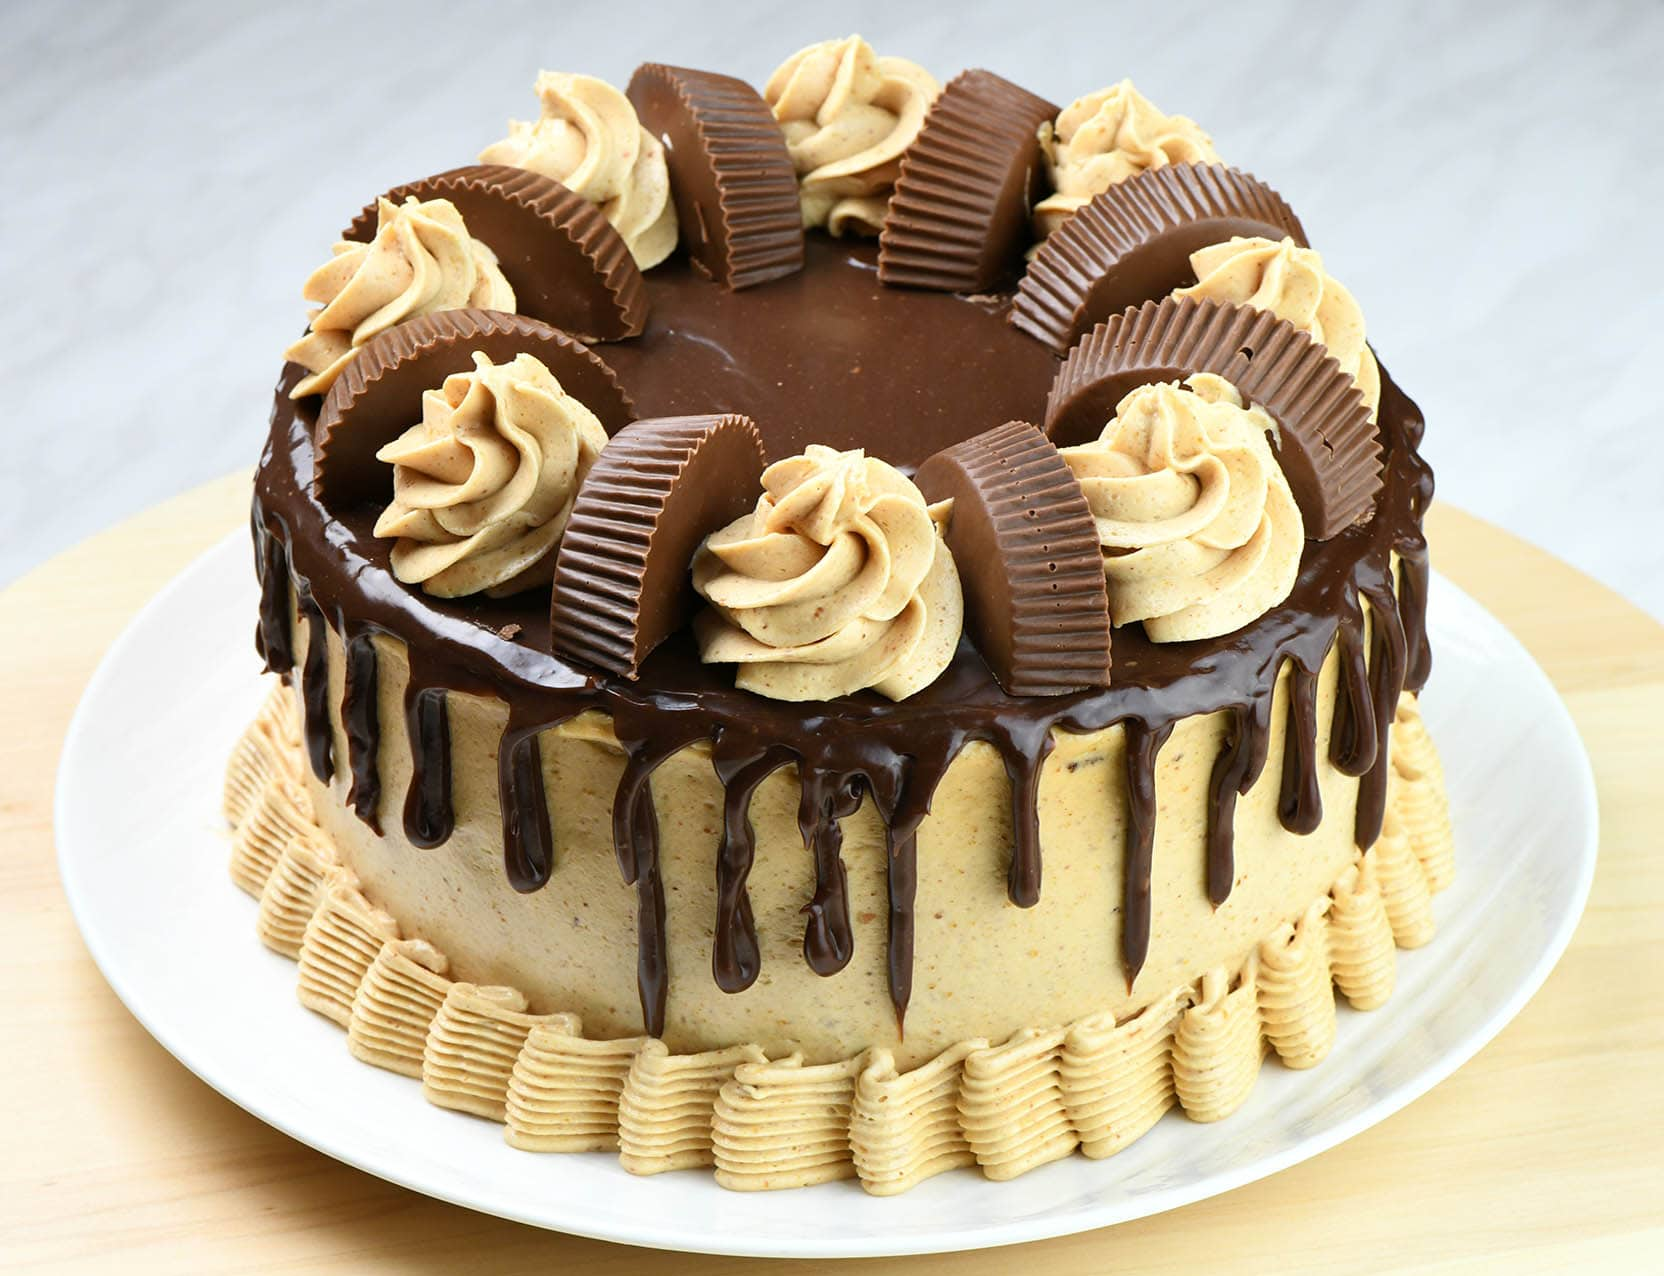 Whole Peanut Butter Chocolate Cake.